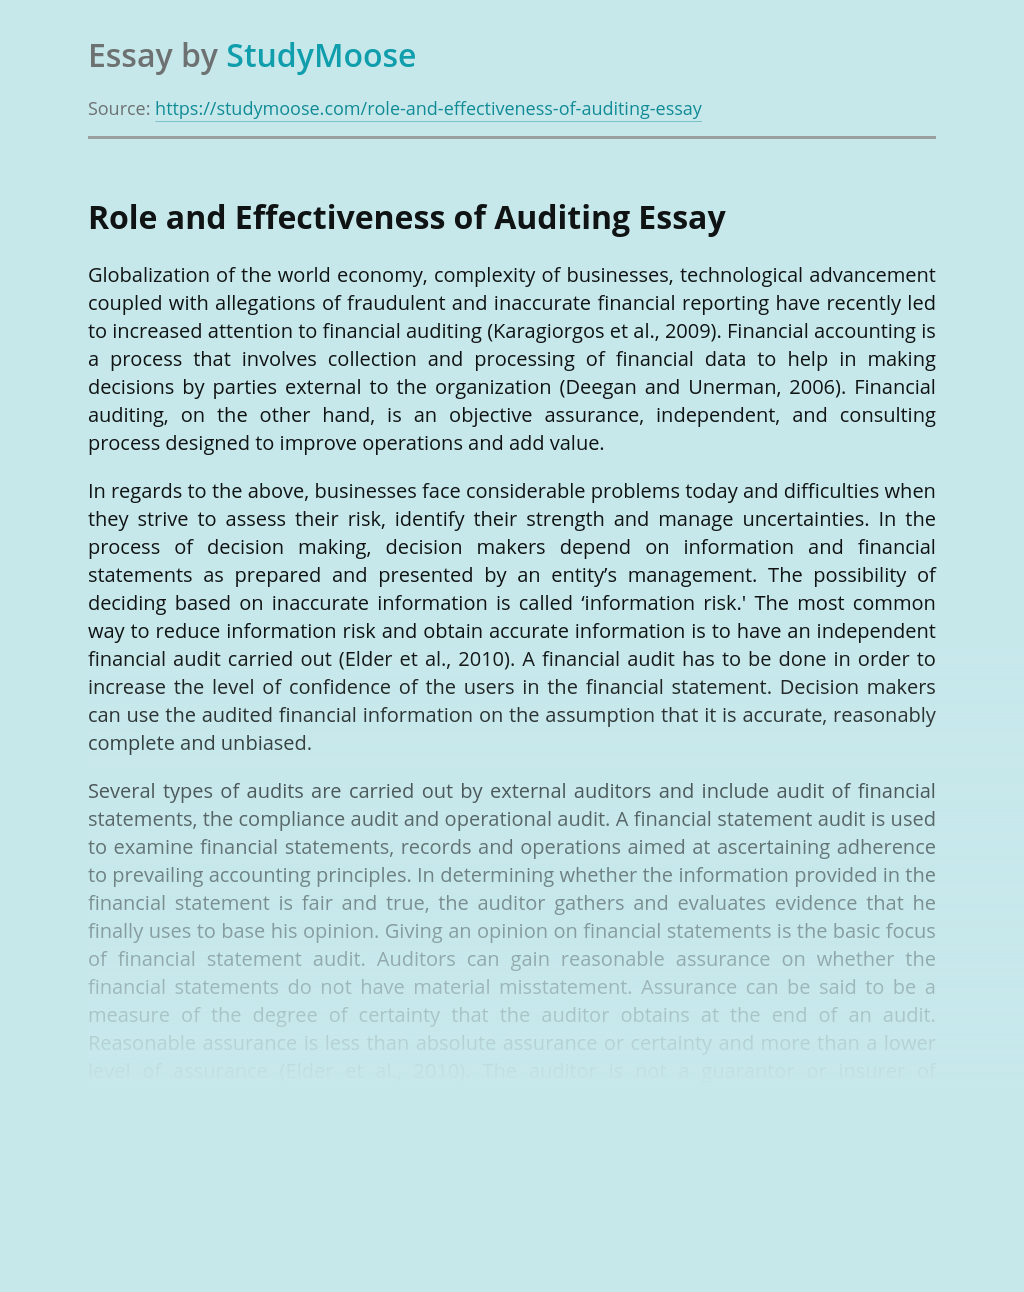 Role and Effectiveness of Auditing in Business